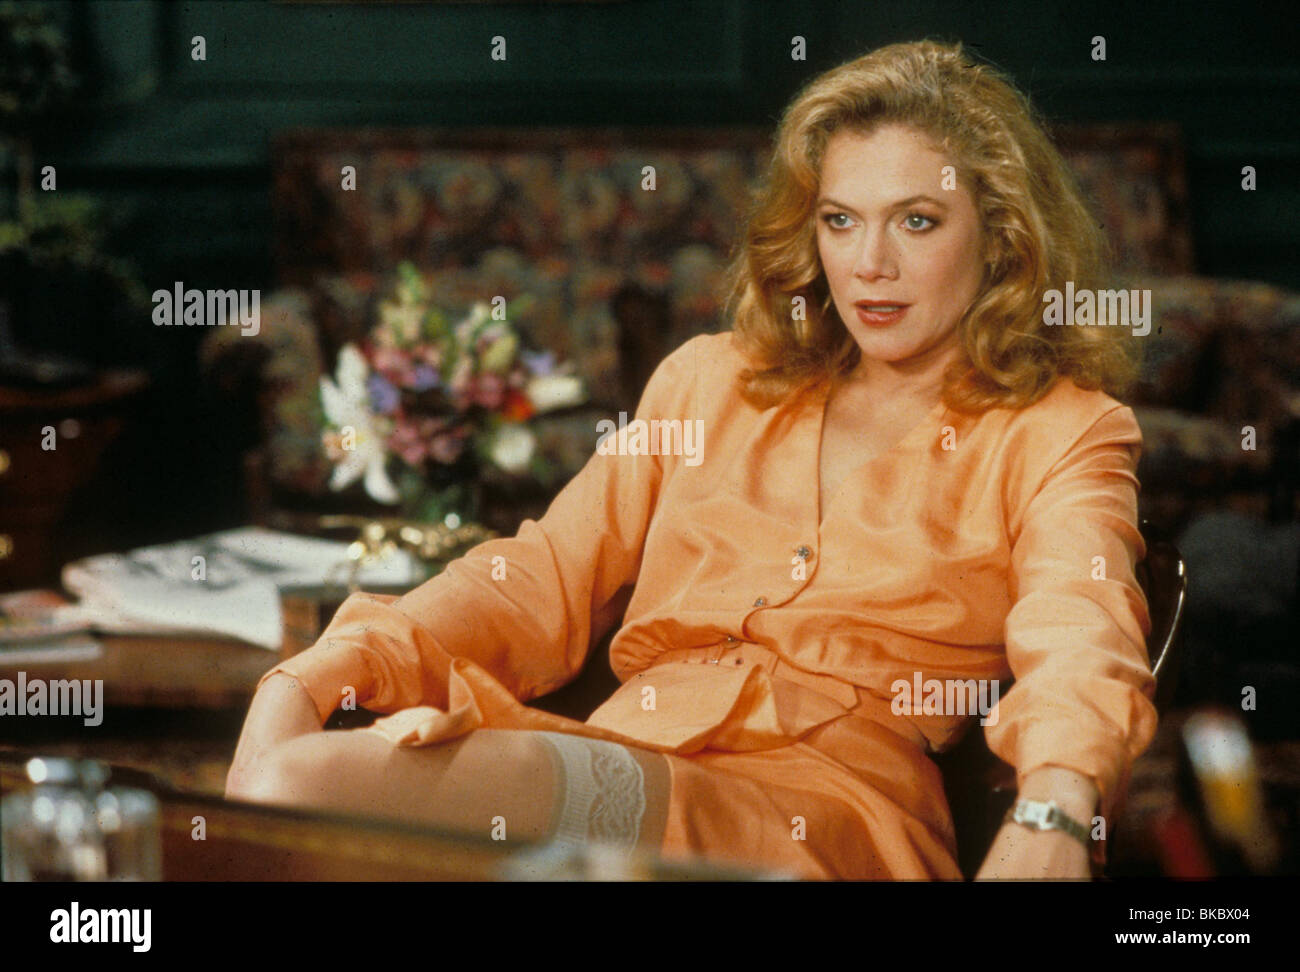 THE WAR OF THE ROSES (1989) KATHLEEN TURNER WOR 004 - Stock Image